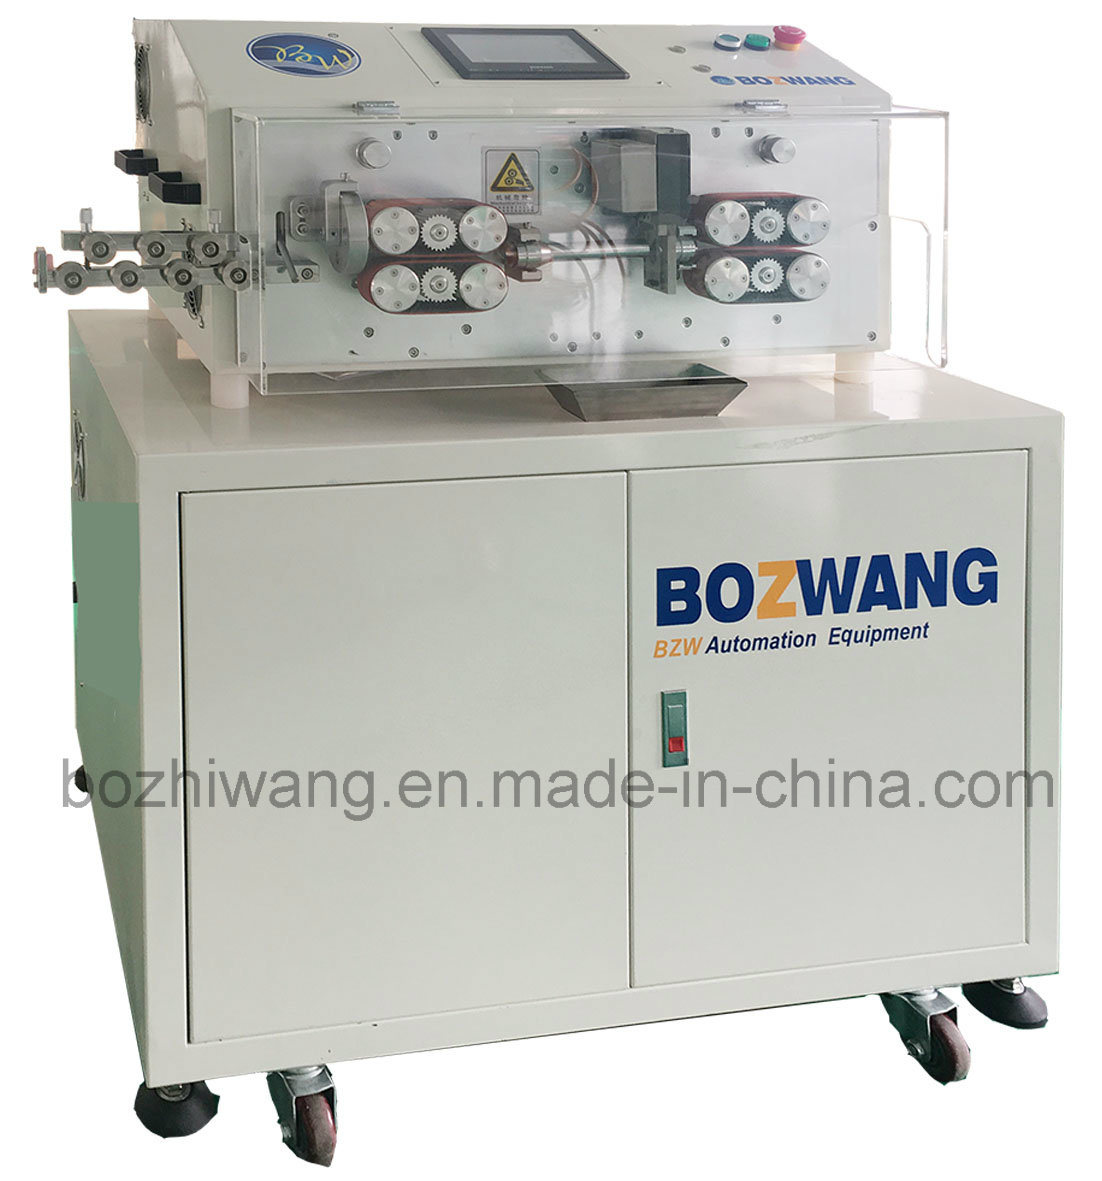 Computerized Cutting and Stripping Machine for 50 mm2 Cable